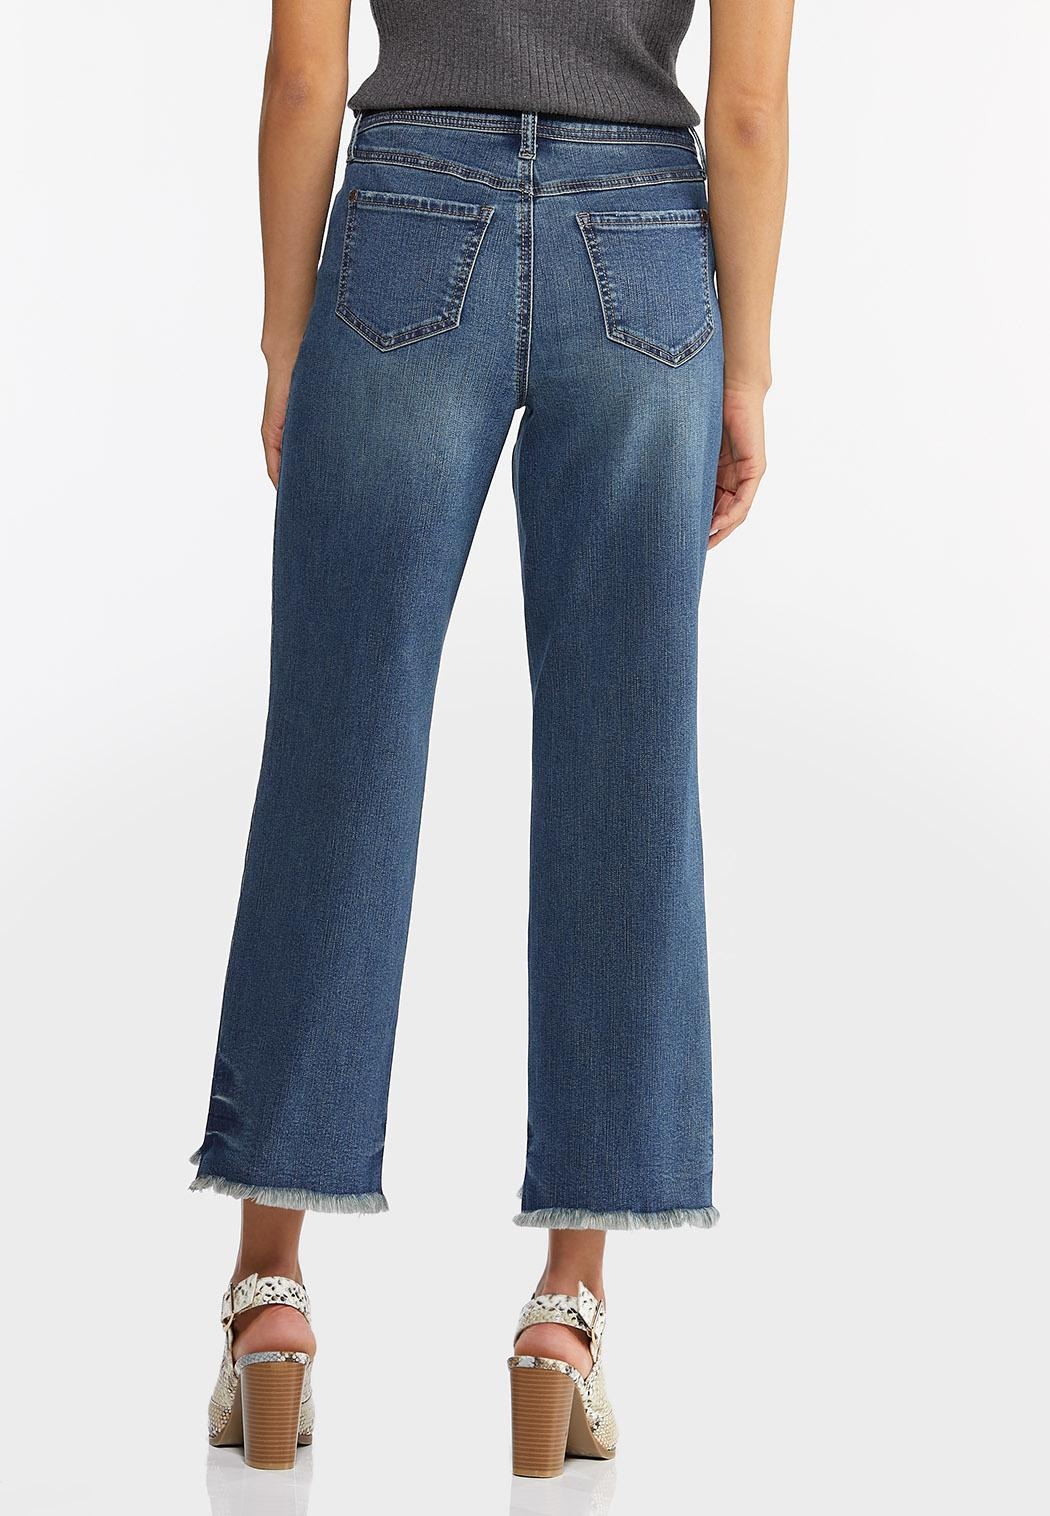 Distressed Ankle Jeans (Item #44436820)